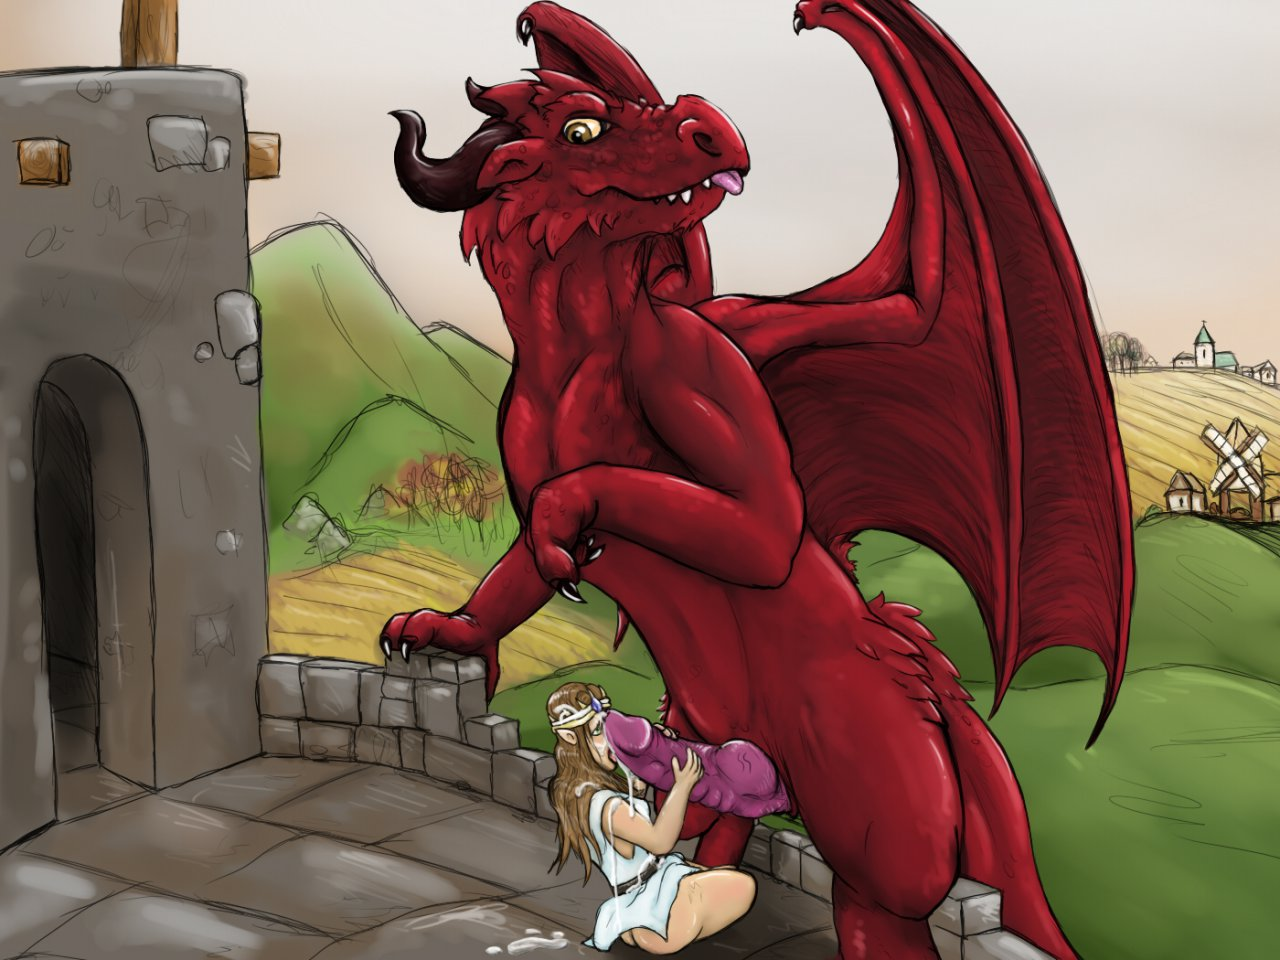 Elfin princess gets fucked by a dragon  erotic comic